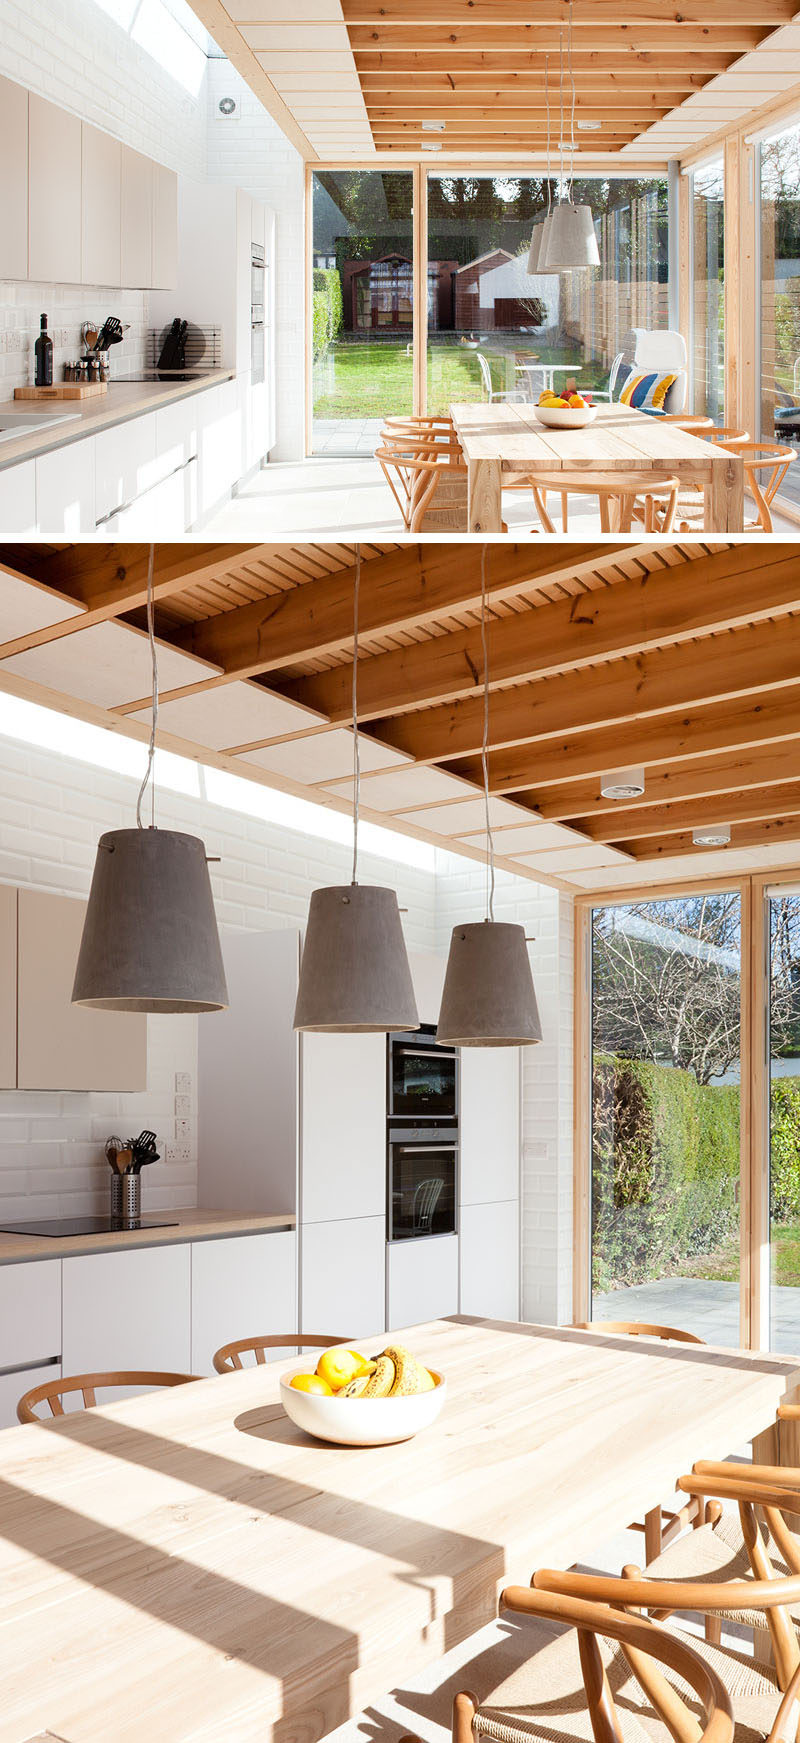 This modern house extension includes a dining table and a kitchen. Three concrete pendant lights anchor the dining table and chairs in the room.